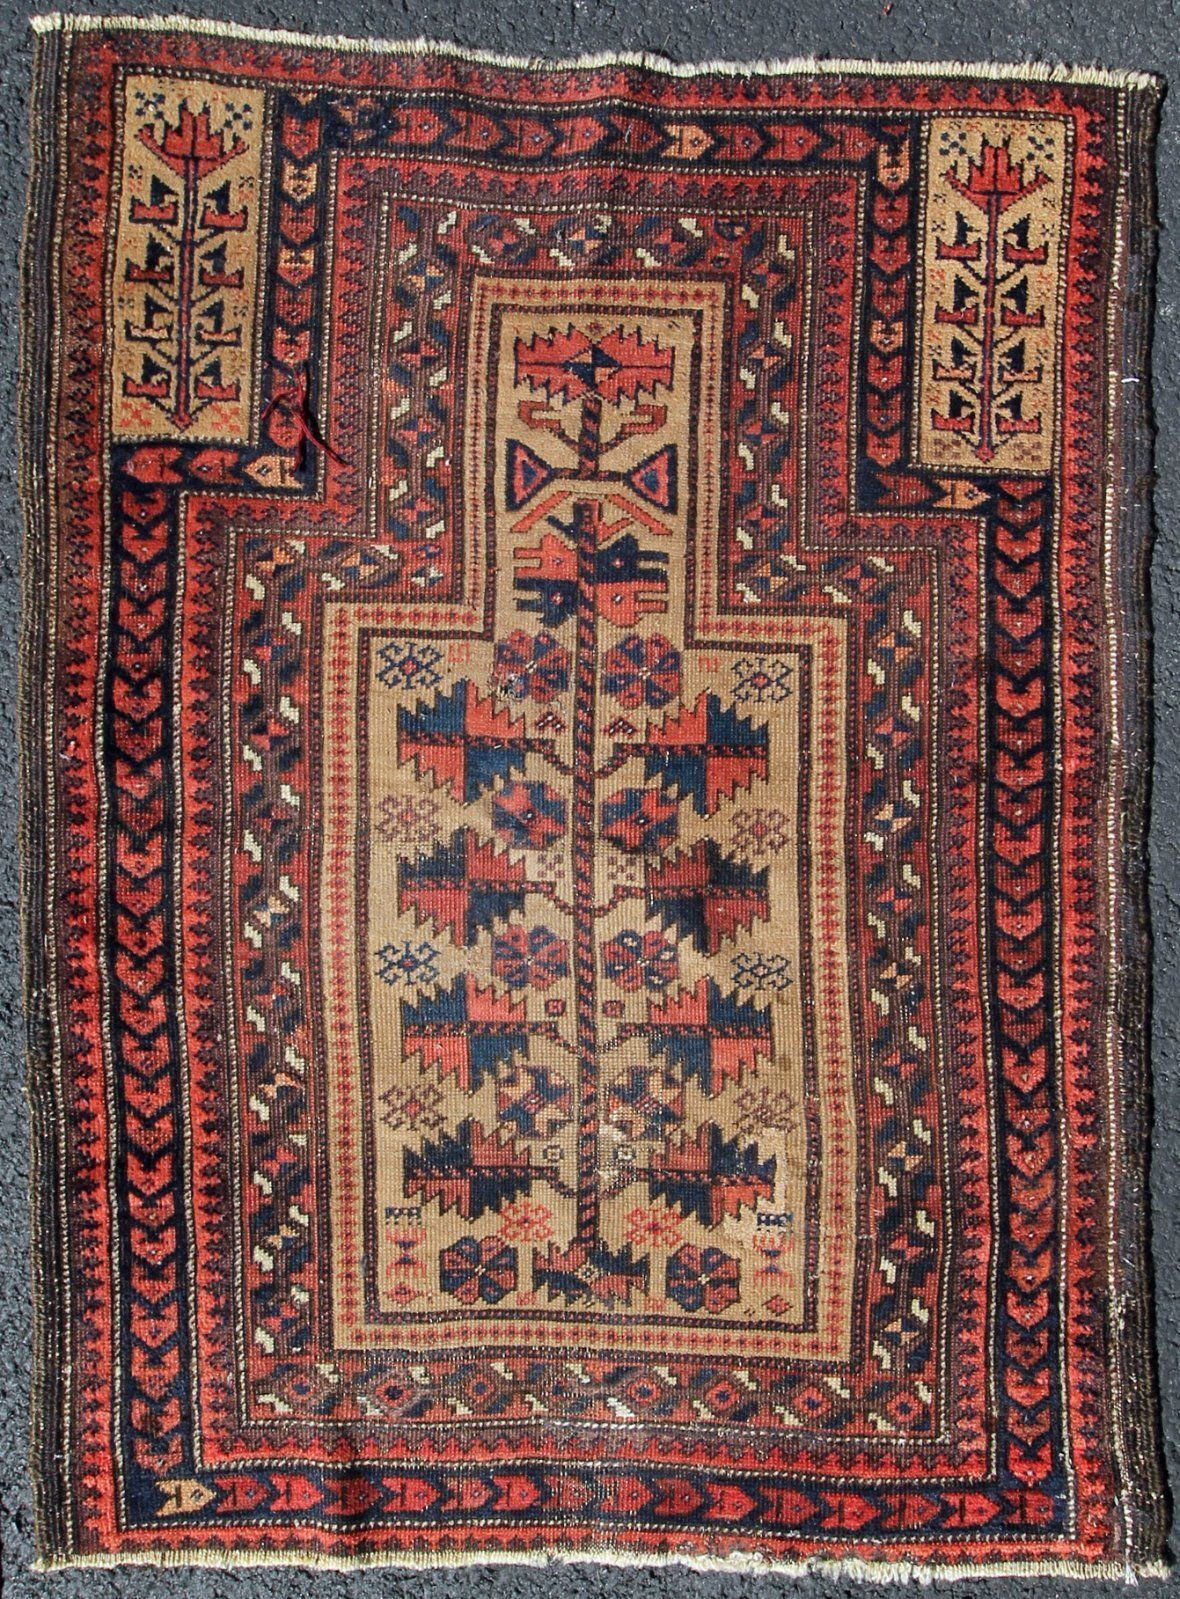 Antique And Archaic Baluch Tree Of Life Prayer Rug Prayer Rug Rugs Rugs On Carpet